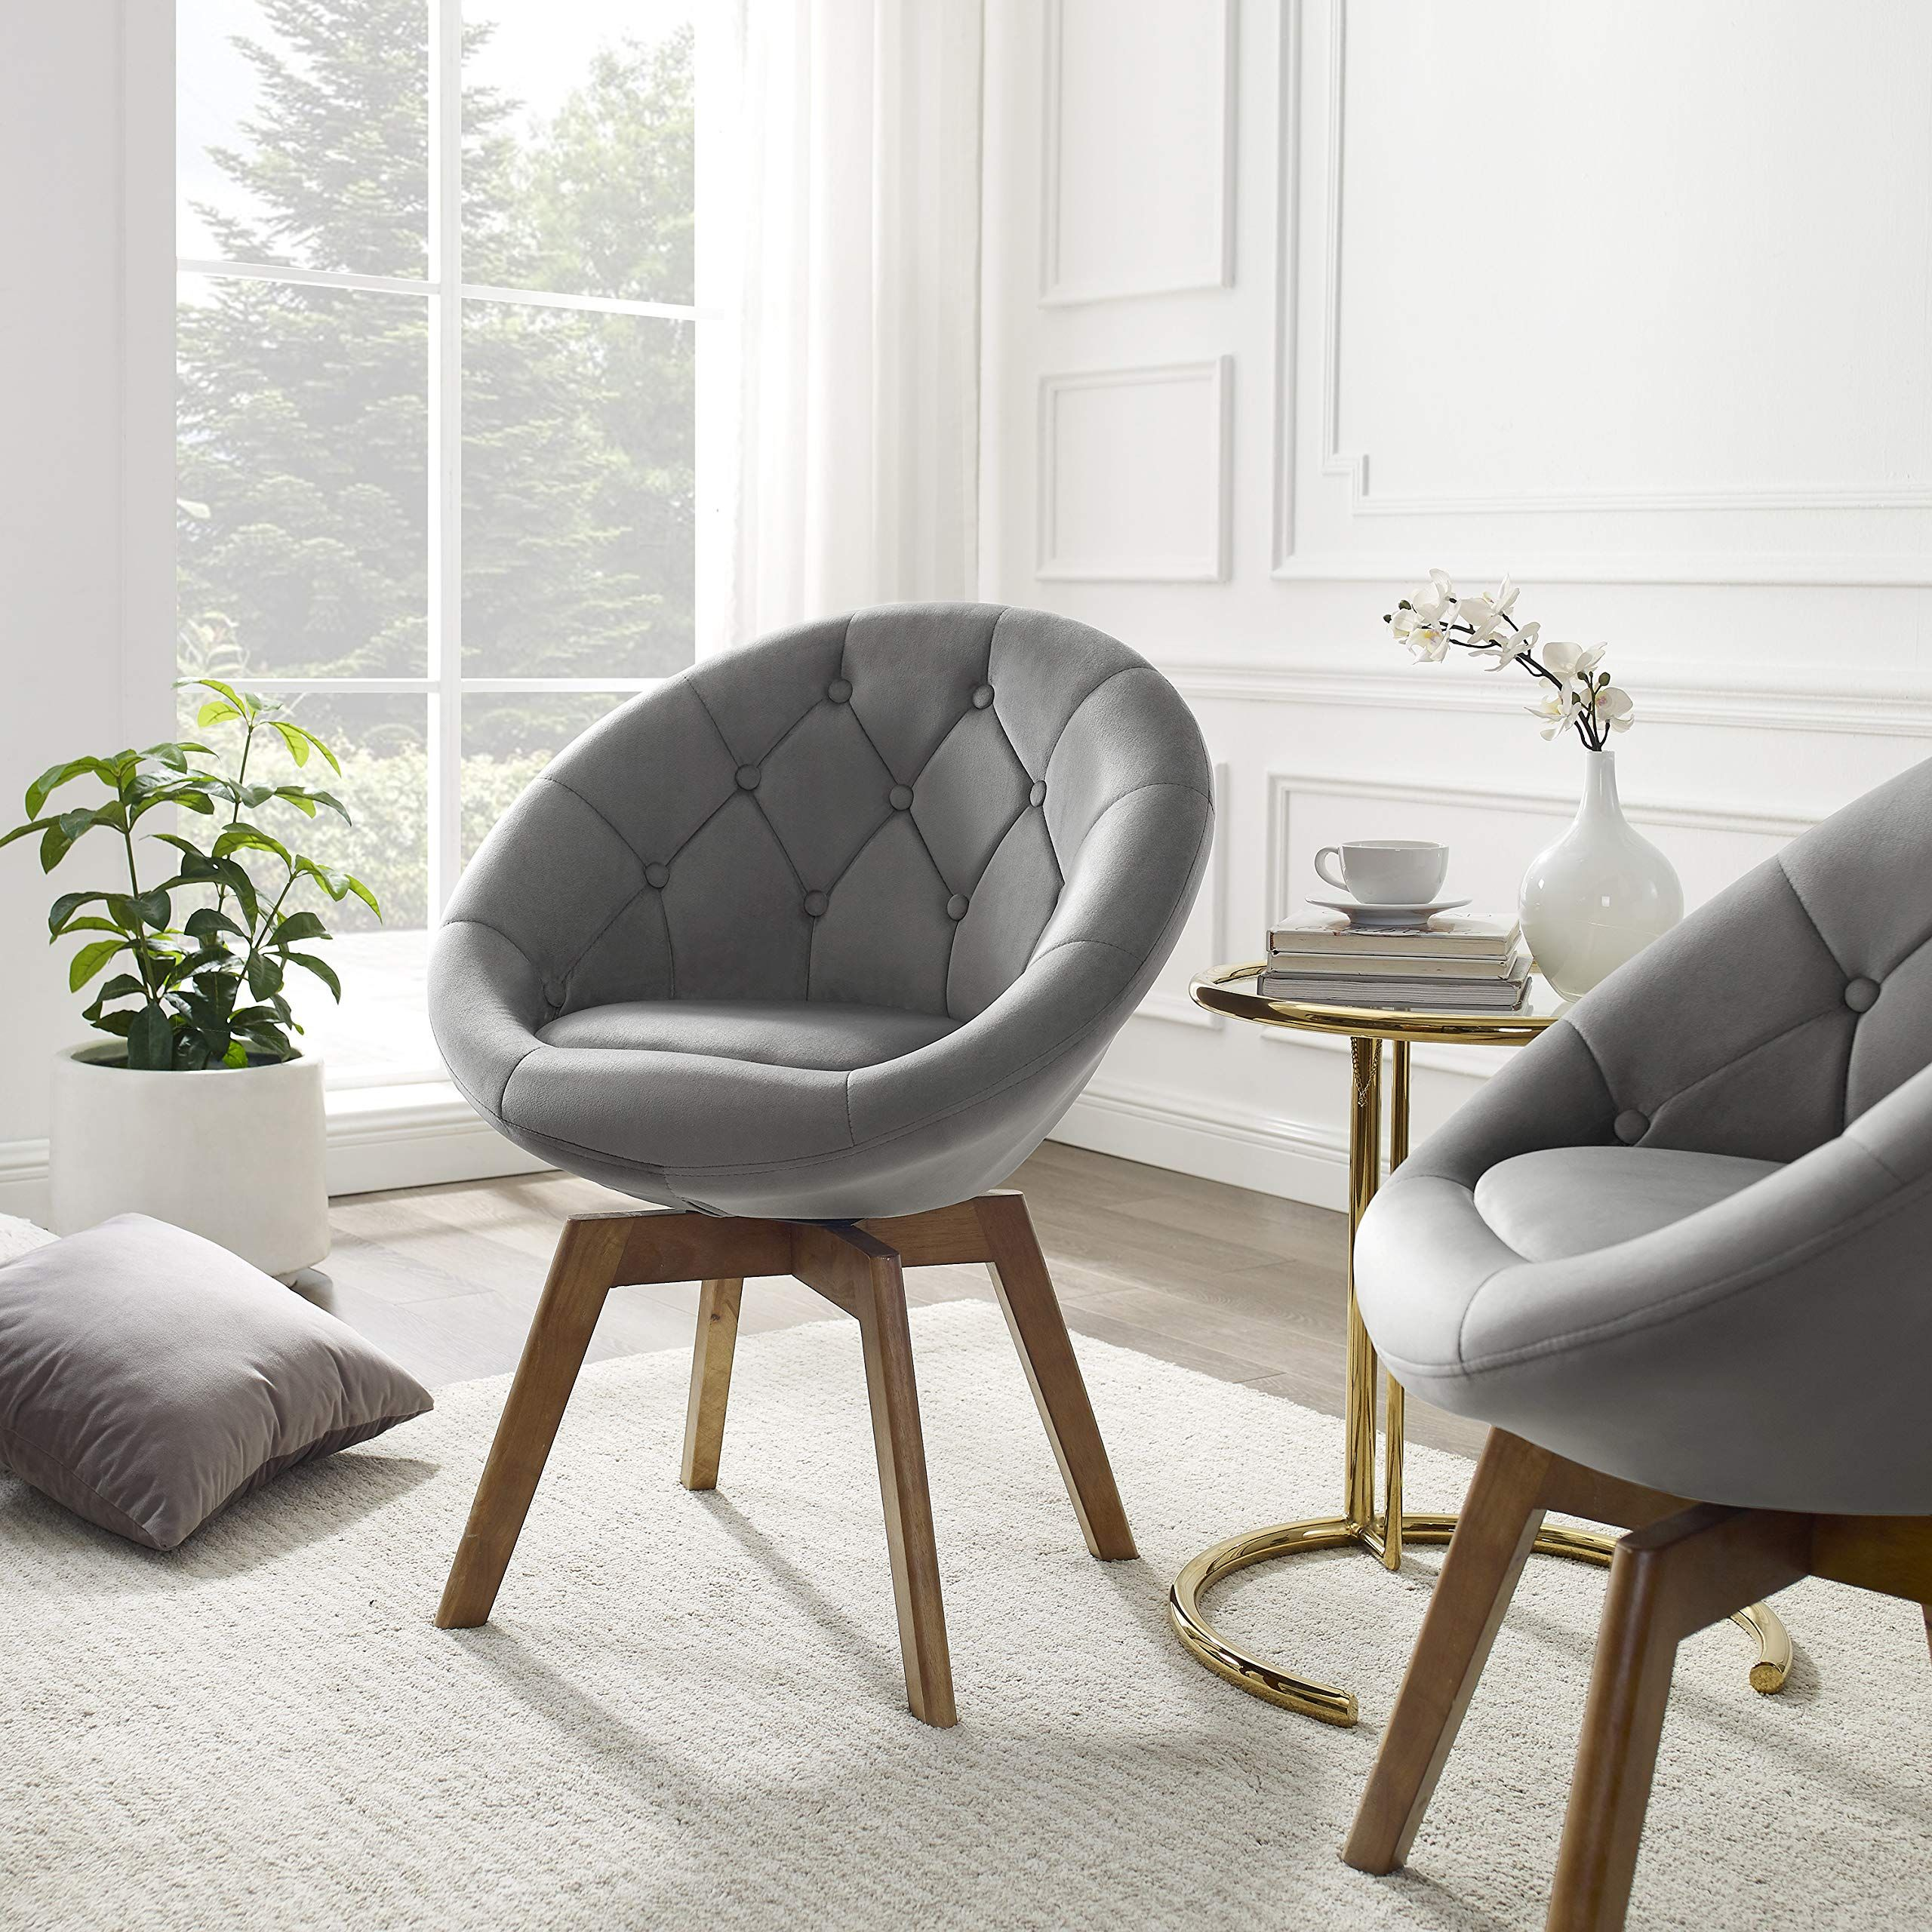 A New Upgradeda I Sround Egg Shaped Swivel Accent Chair With Arms 363a Swiveling Design Realizes Easy D In 2020 Accent Chairs Swivel Accent Chair Round Swivel Chair #round #swivel #chair #living #room